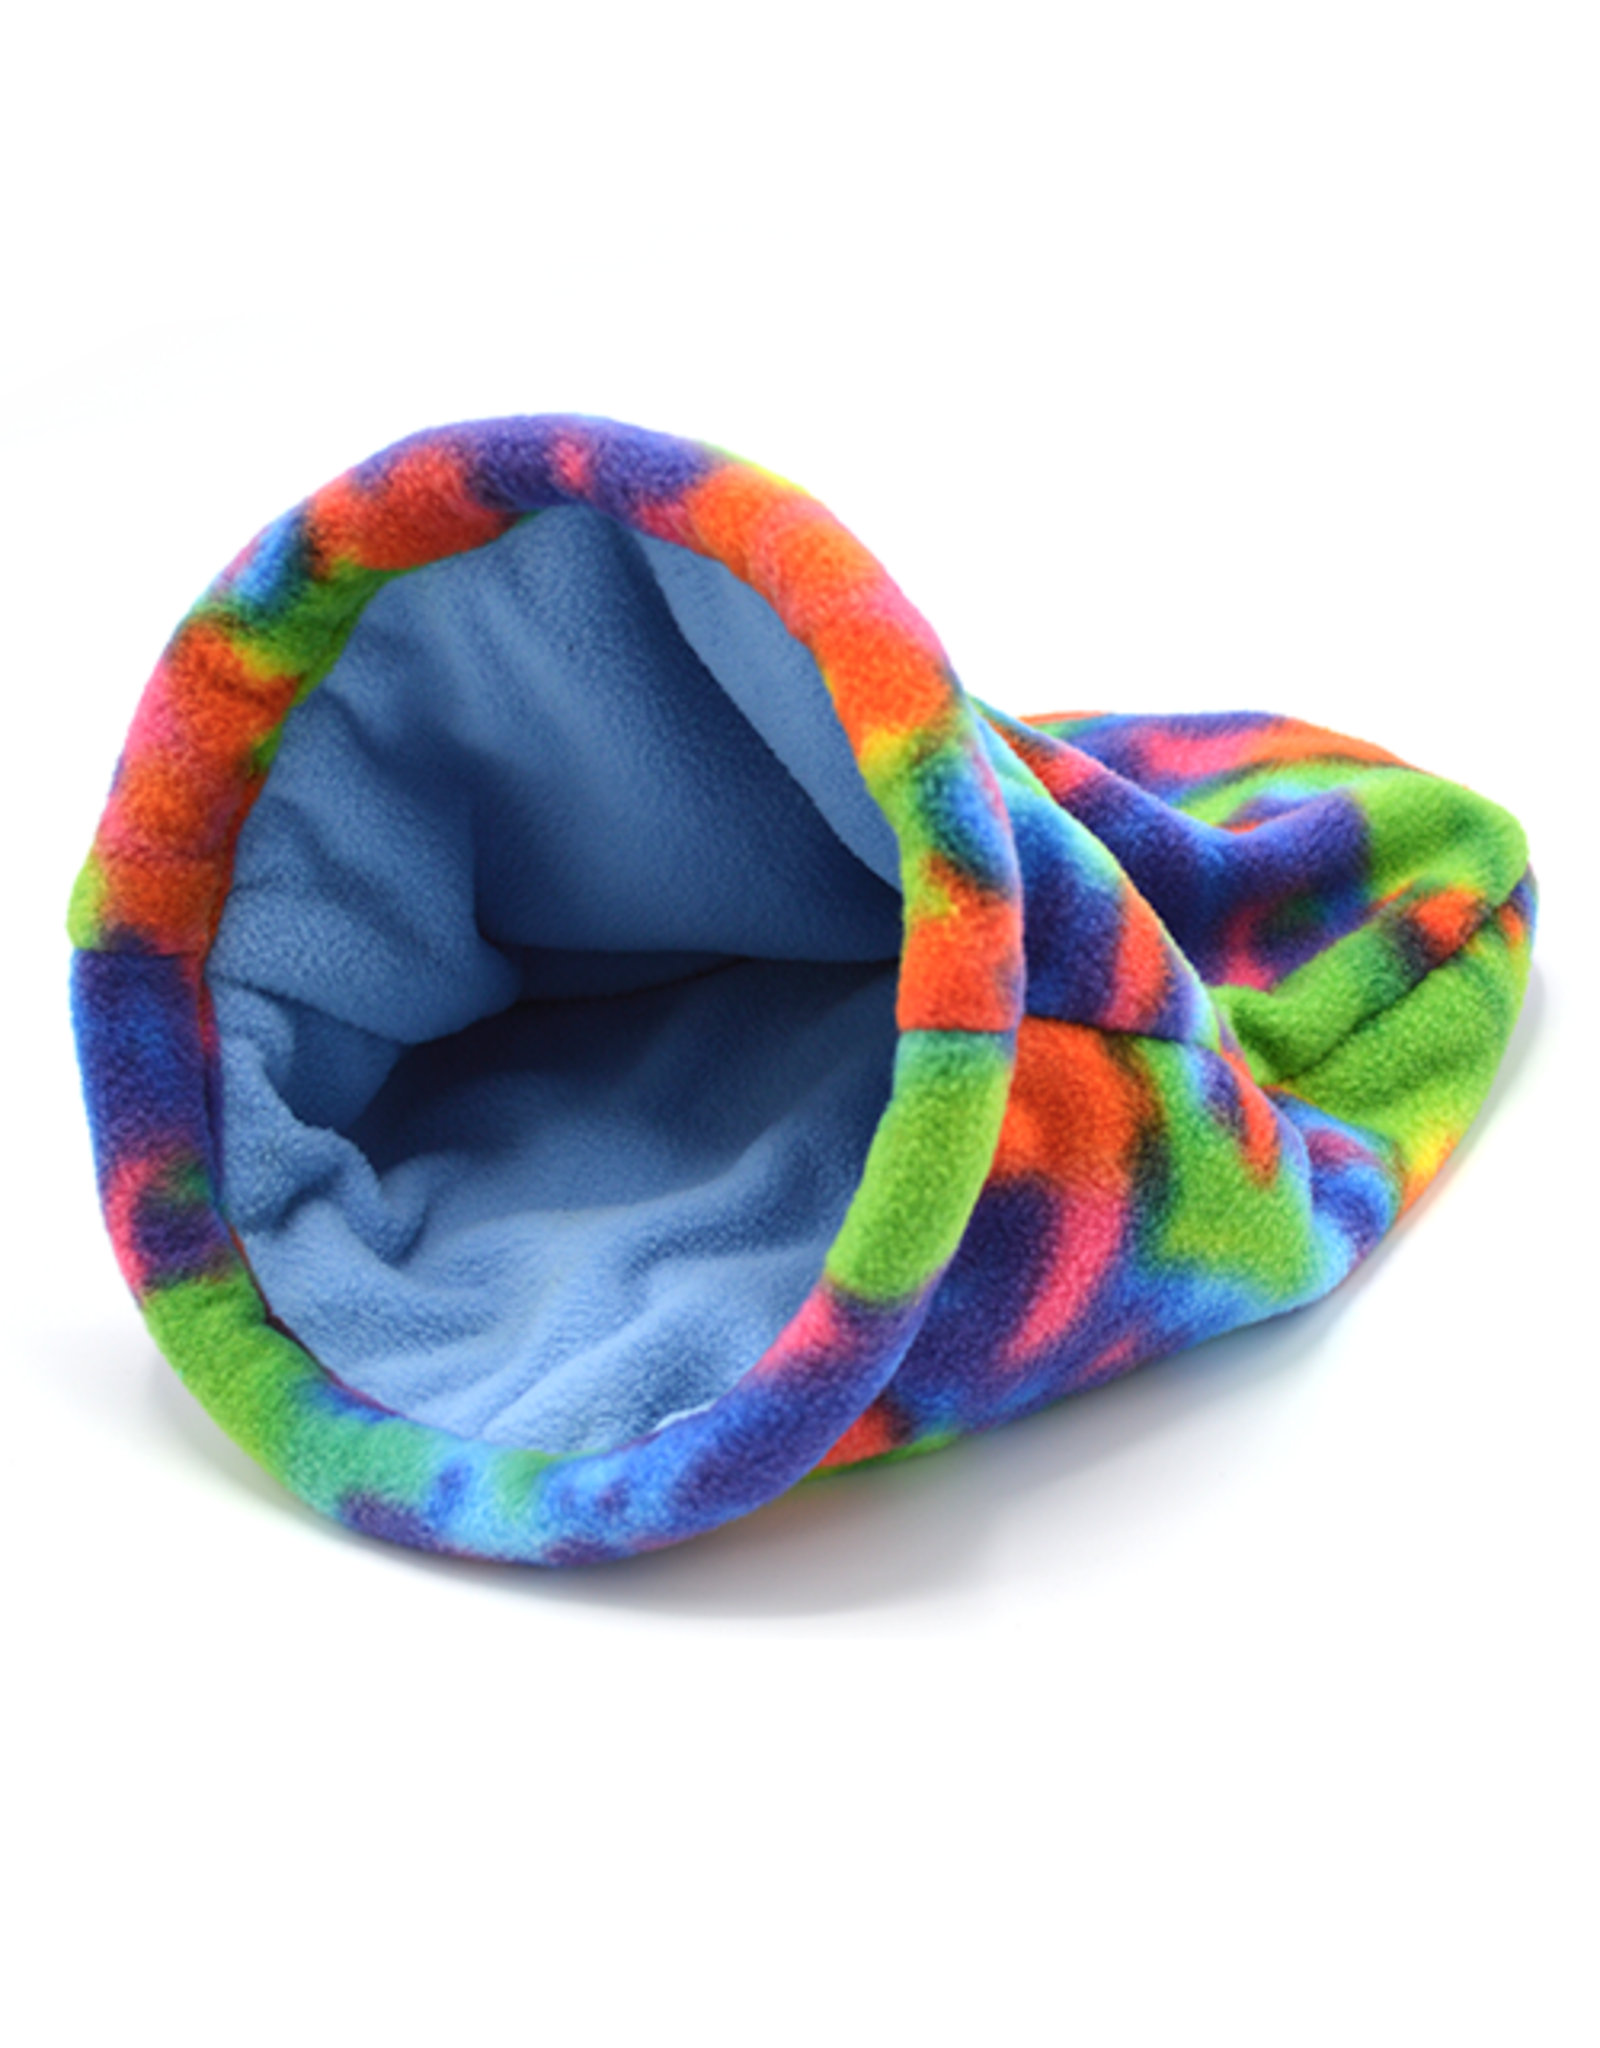 Oxbow OXBOW Enriched Life Cozy Cave